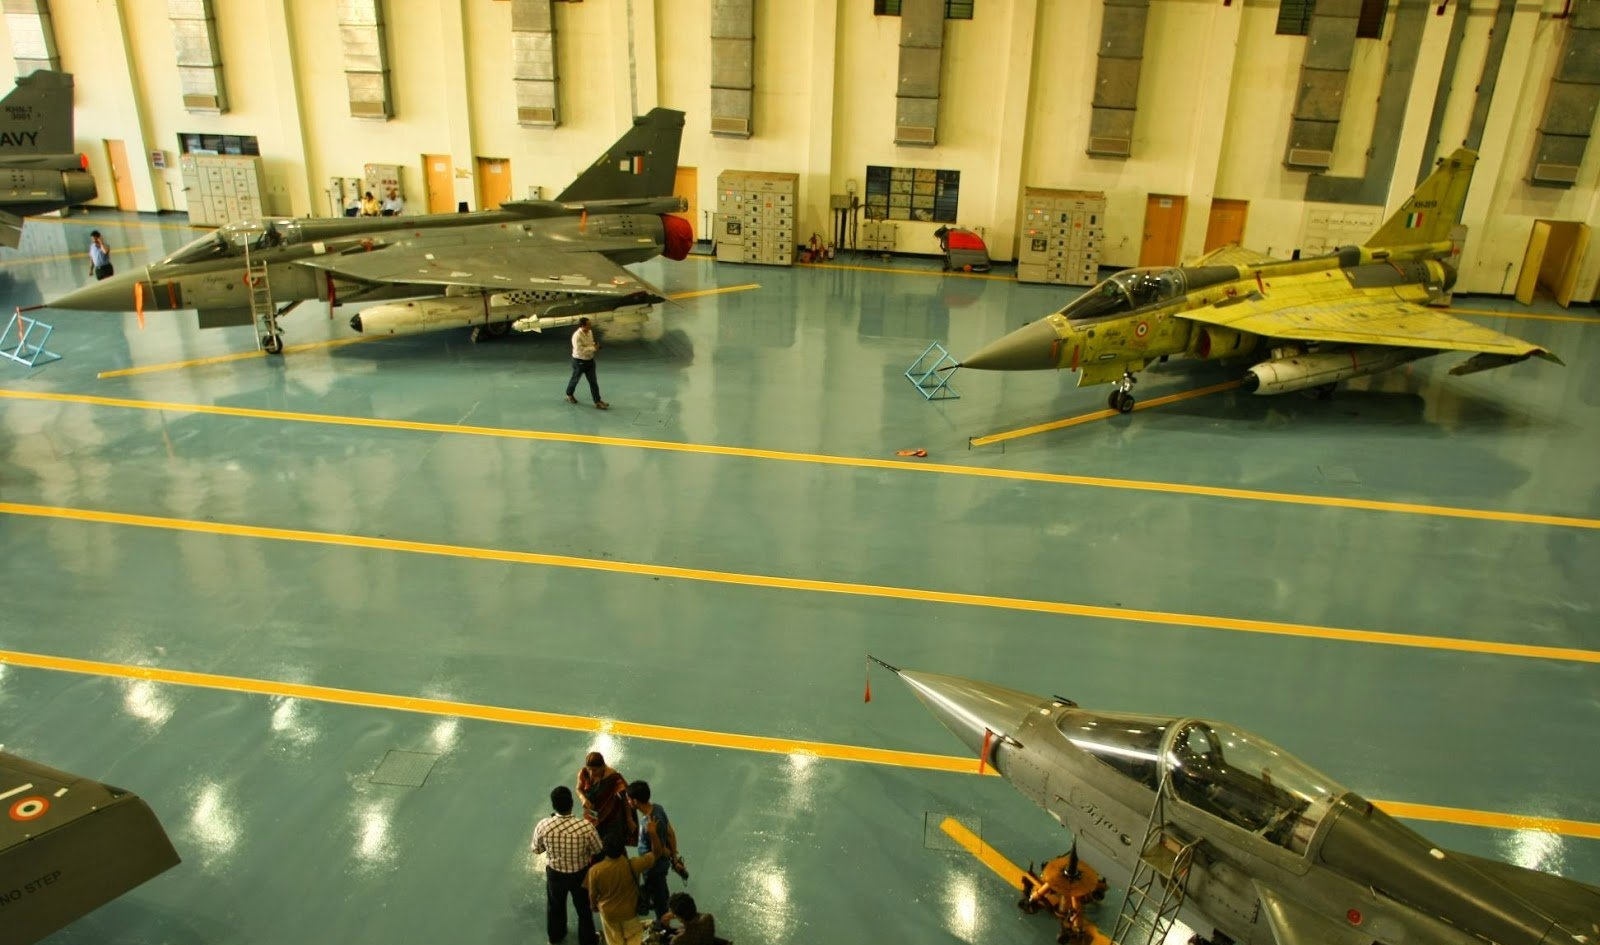 HAL Registers All Time High Turnaround of Rs. 17,406 Crores; Receives Orders worth Rs. 21,000 crores